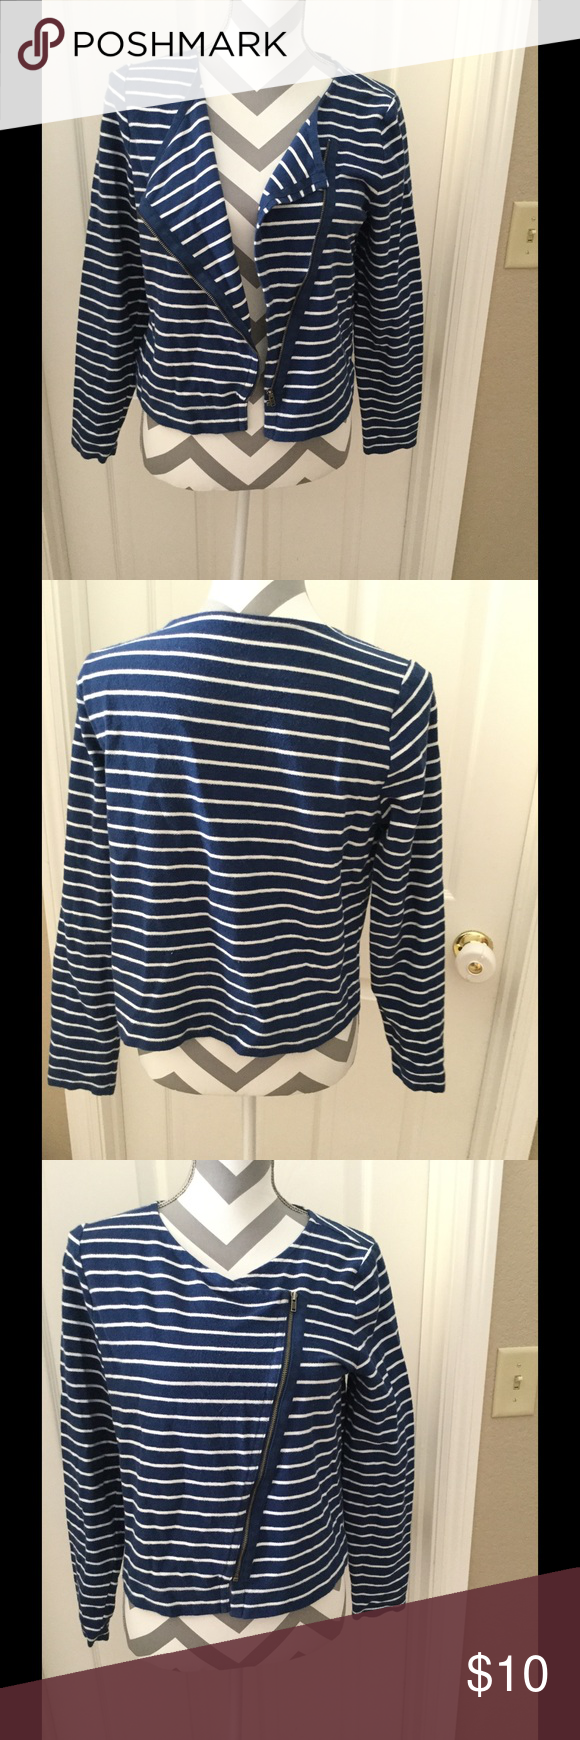 Side zip casual blazer- nautical look. Almost feels like a sweater.  Blue and white stripes. 95% cotton, 5% cotton.  Very lightweight and comfortable. Looks great with jeans, also can be dressed up to wear to the office. Stylus Jackets & Coats Blazers